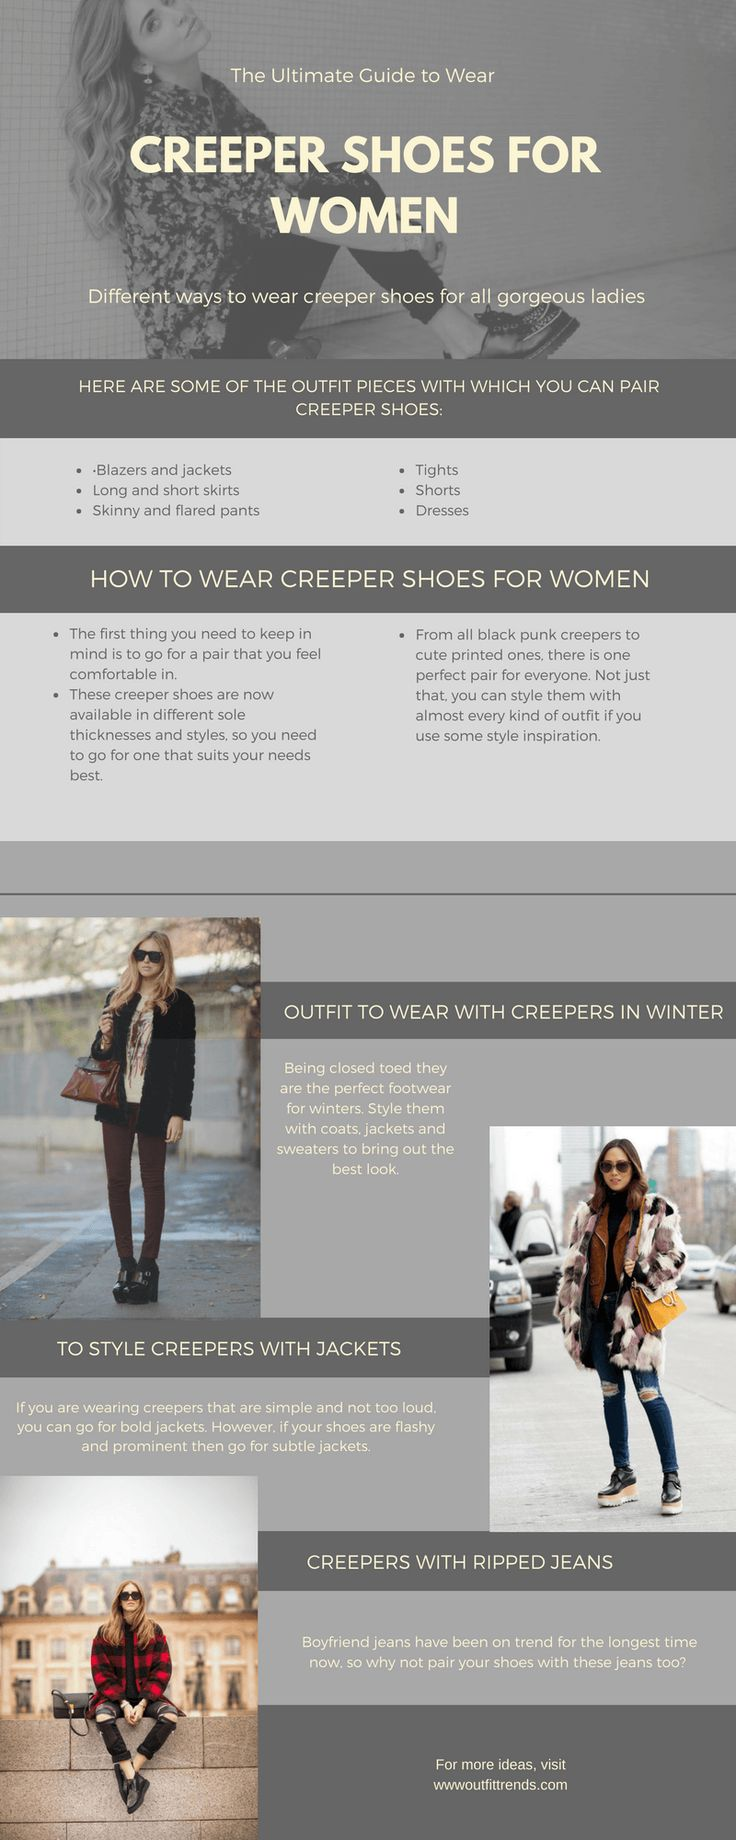 Women Creeper Shoes Outfits - 22 Ways to Wear Creeper Shoes